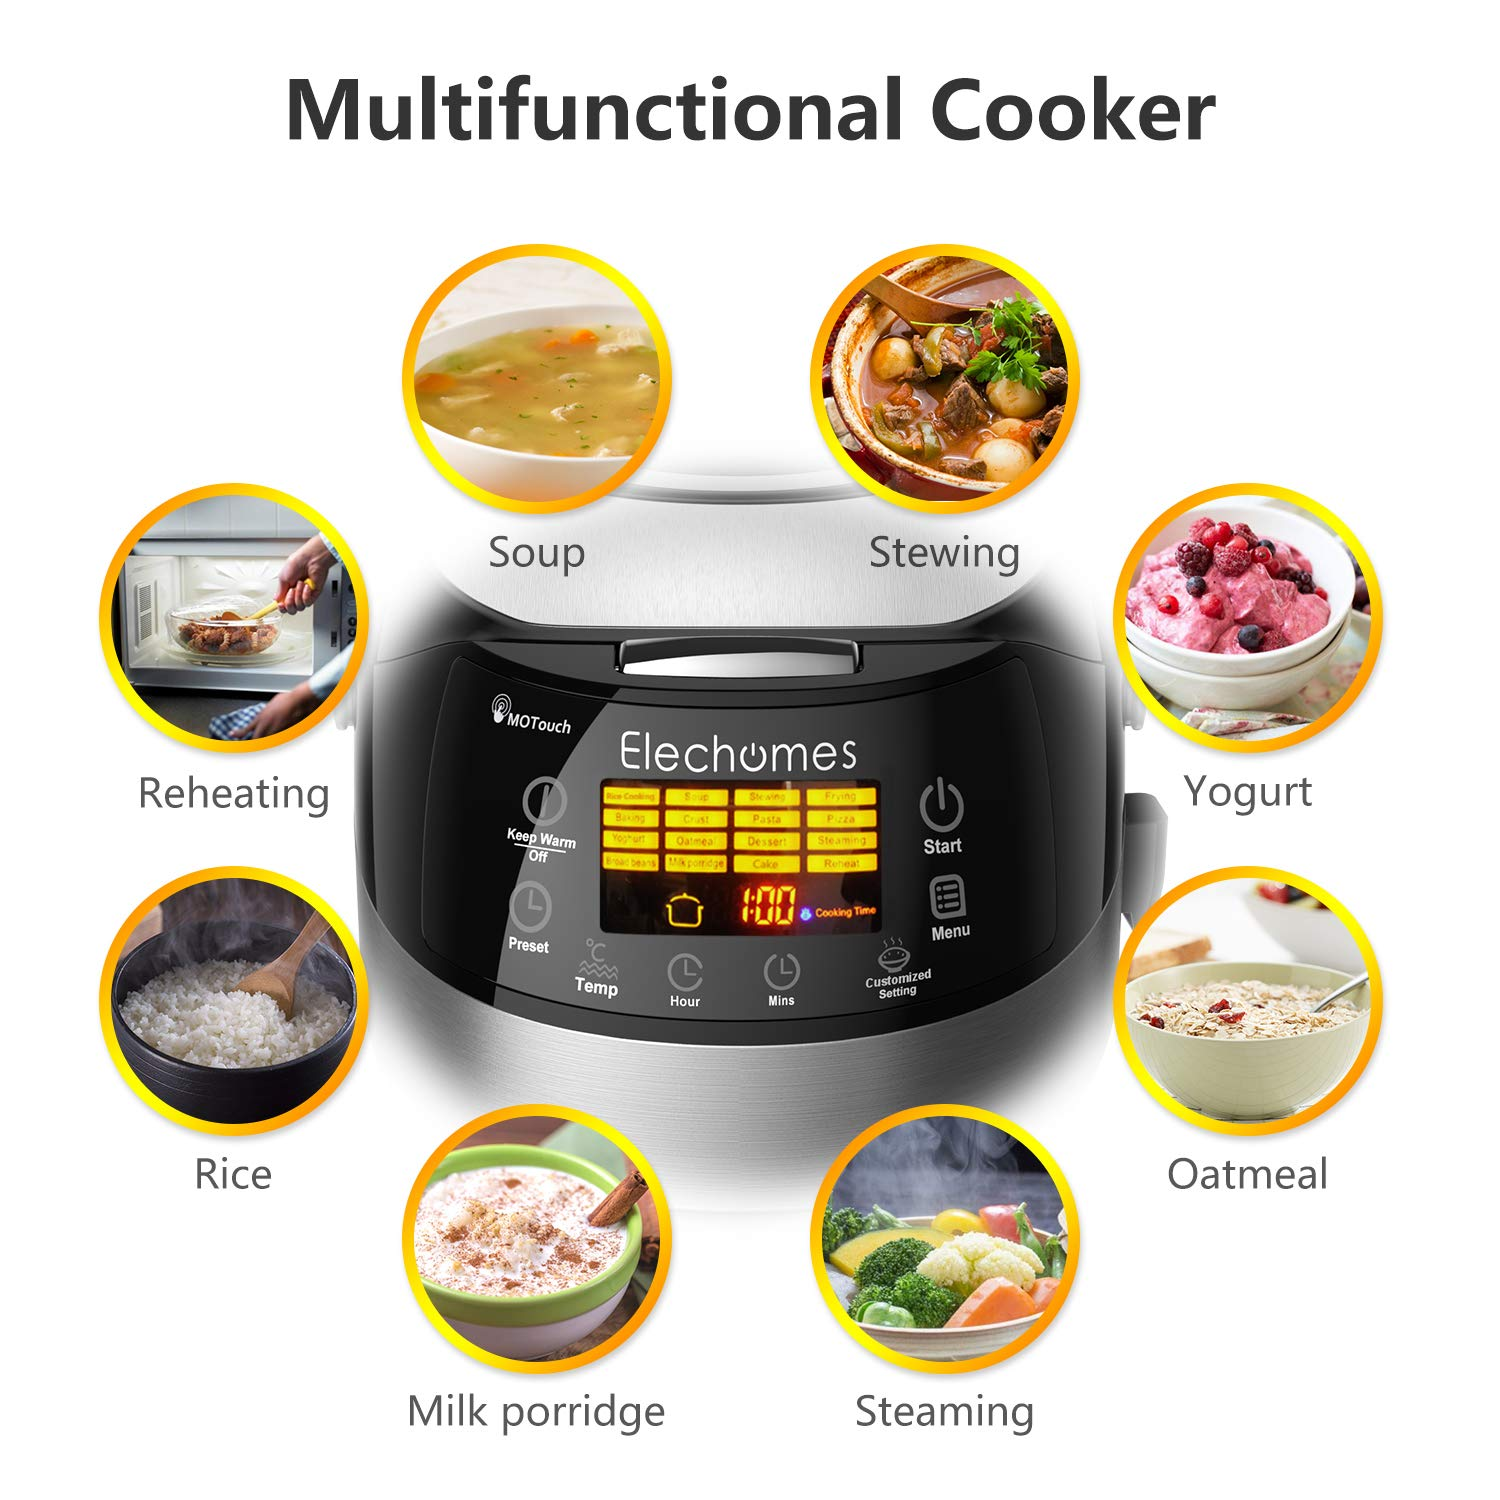 Elechomes LED Touch Control Rice Cooker, 16-in-1 Multi-function Cooker, 10-Cups Uncooked Warmer Cooker with Steam & Rinse Basket, CR502 by Elechomes (Image #3)